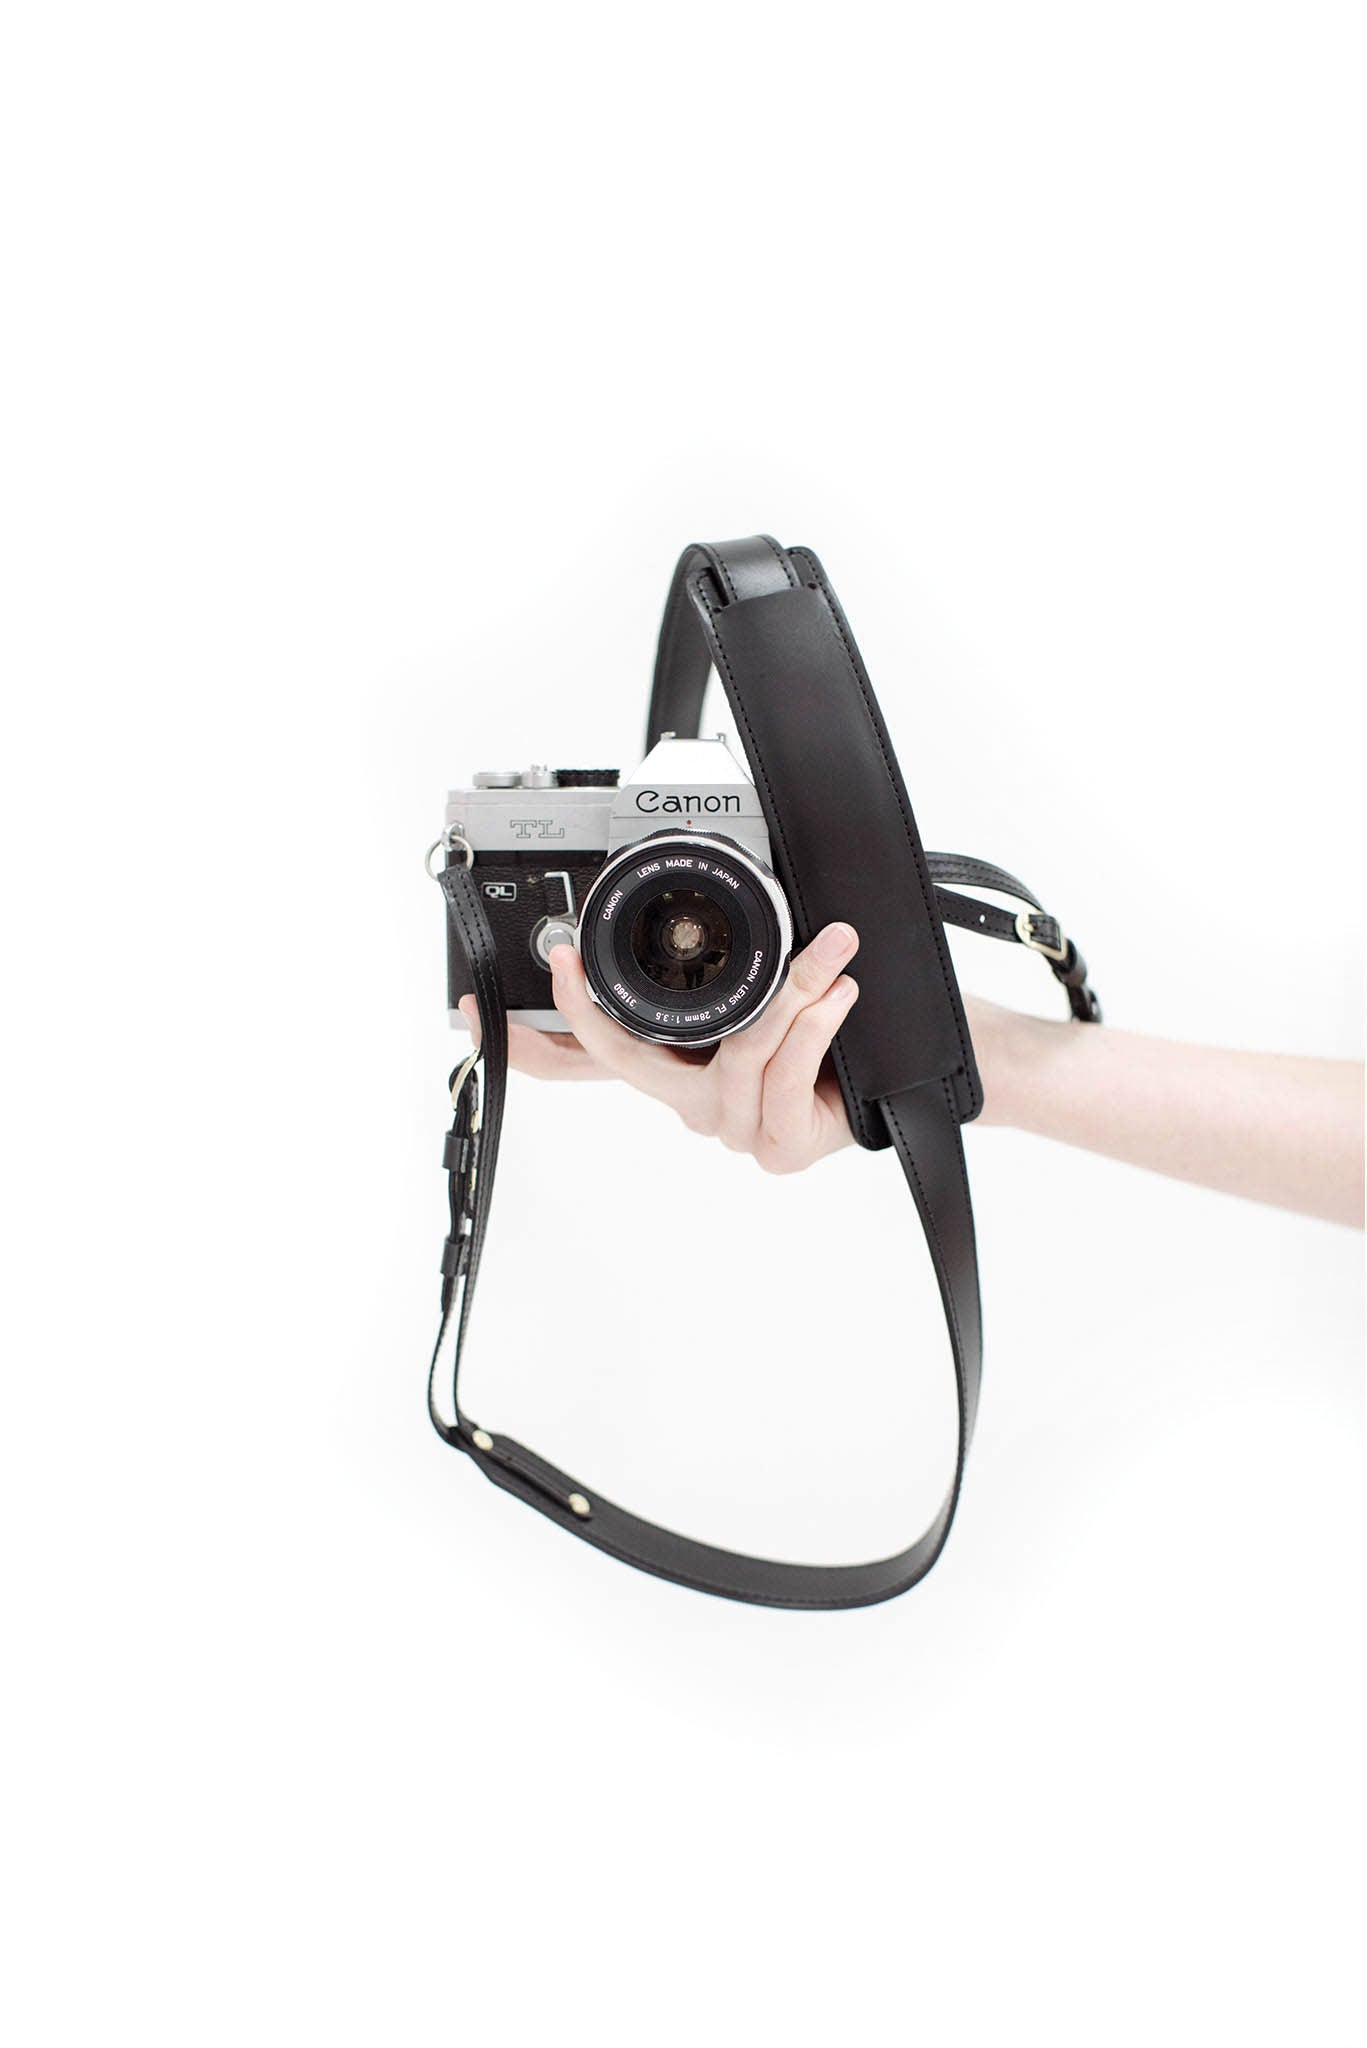 FOTO | The Skinny Black - a black genuine all-leather skinny camera strap that can be personalized with a monogram or business logo, making this leather camera strap the perfect personalized gift.